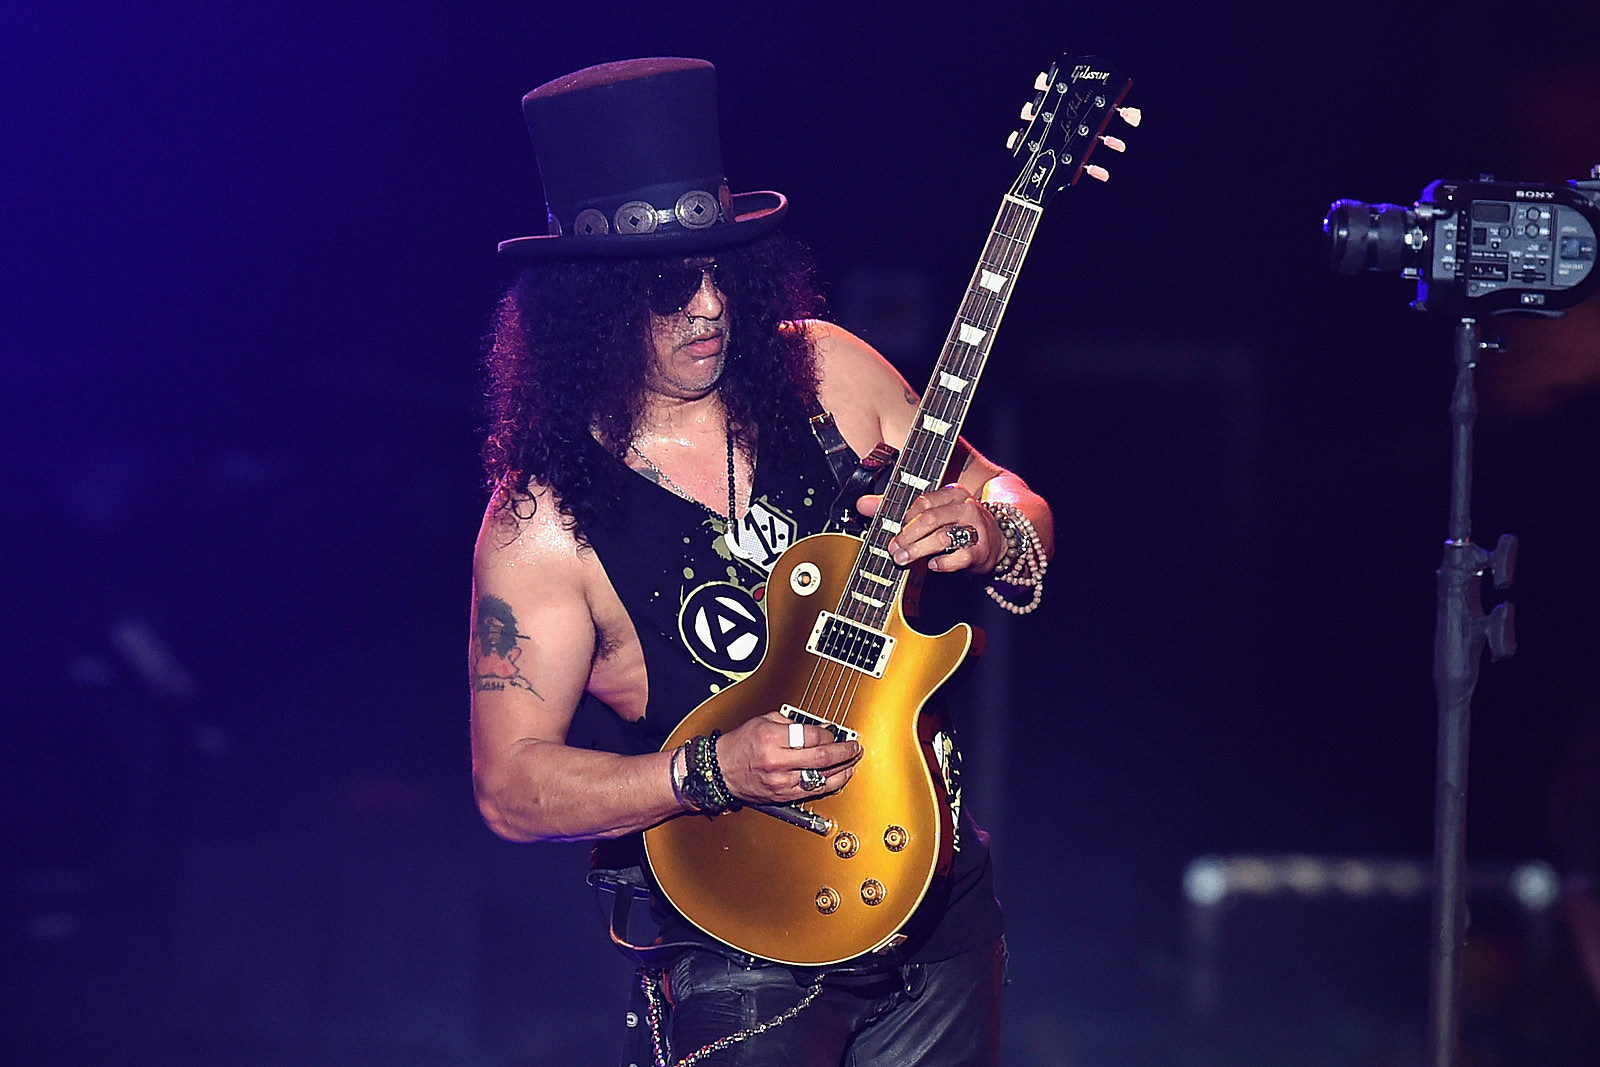 But have you seen slash's insta?  BECAUSE I HAVE AND I'M OBSESSED